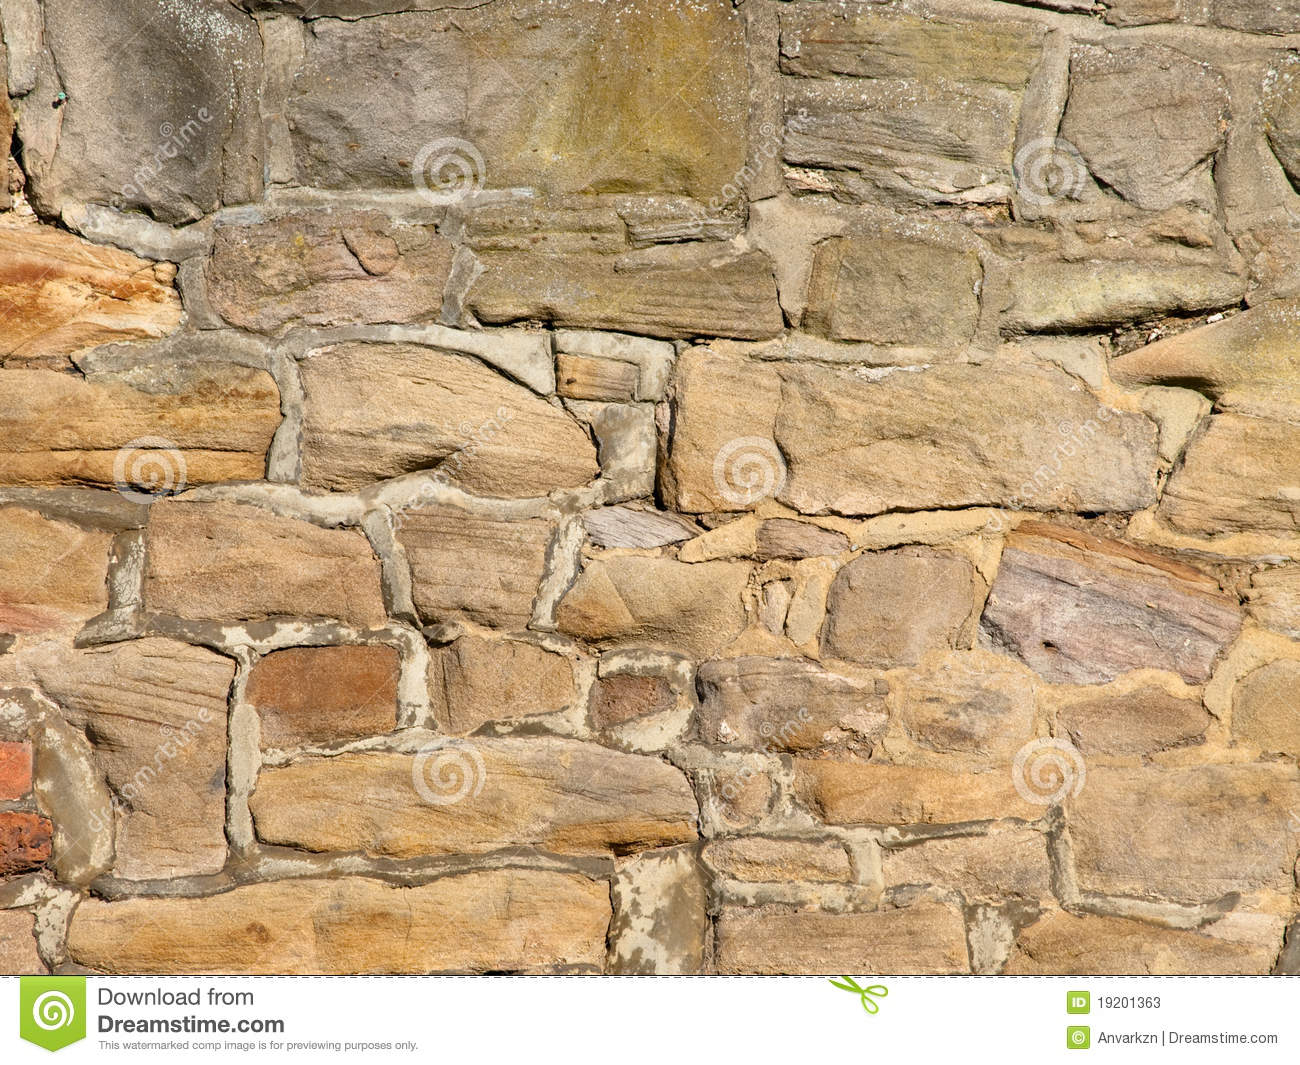 Rubble Stone Wall : Rubble stone wall background stock image